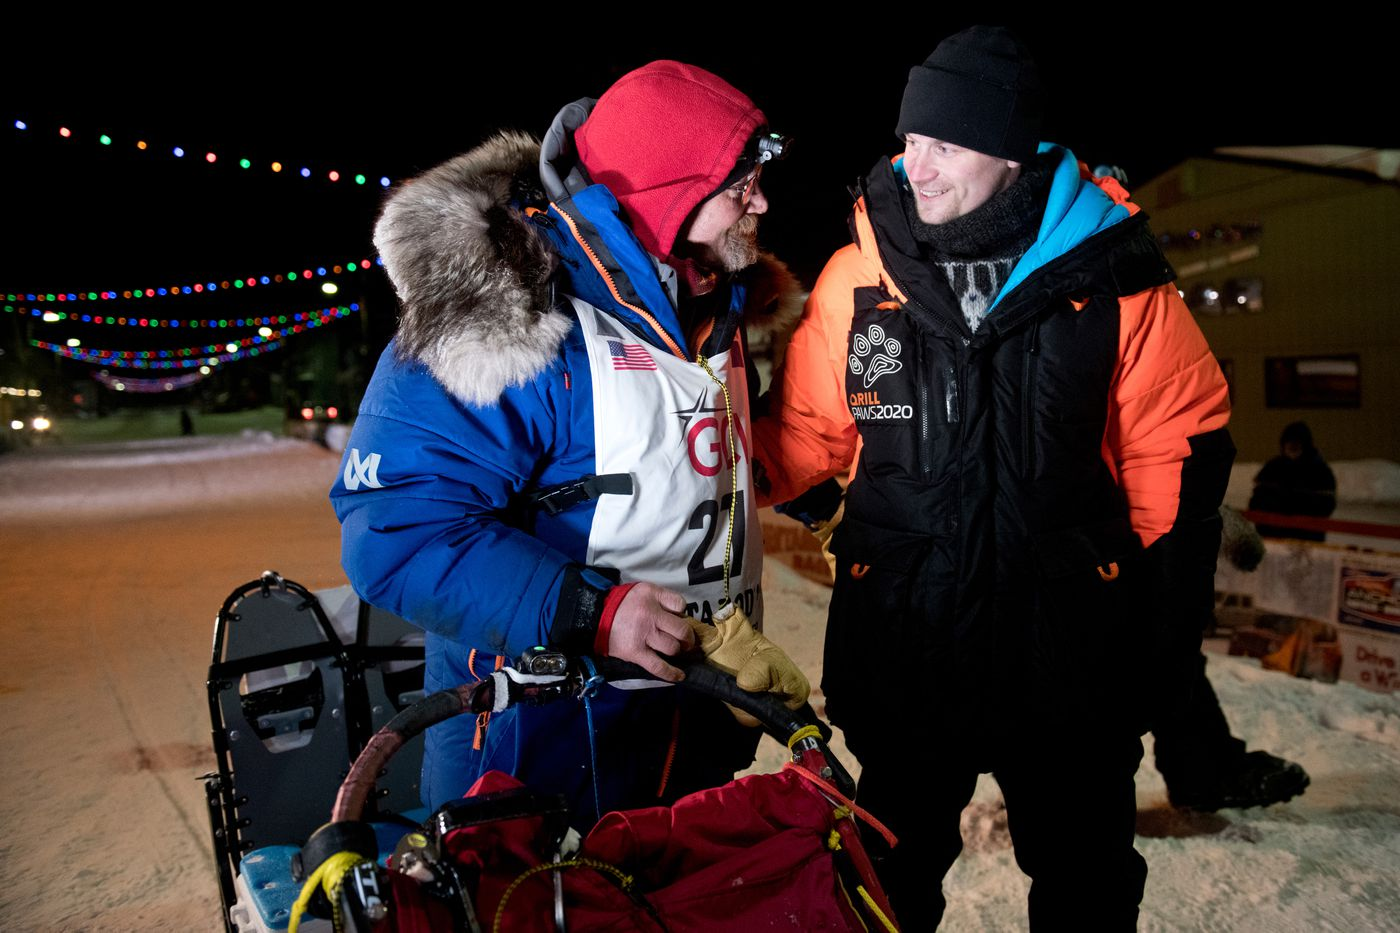 Mitch Seavey is greeted by his son, former Iditarod champion Dallas Seavey, in Nome. Mitch Seavey arrived in Nome early Wednesday to take second place in the Iditarod Trail Sled Dog Race. (Marc Lester / ADN)